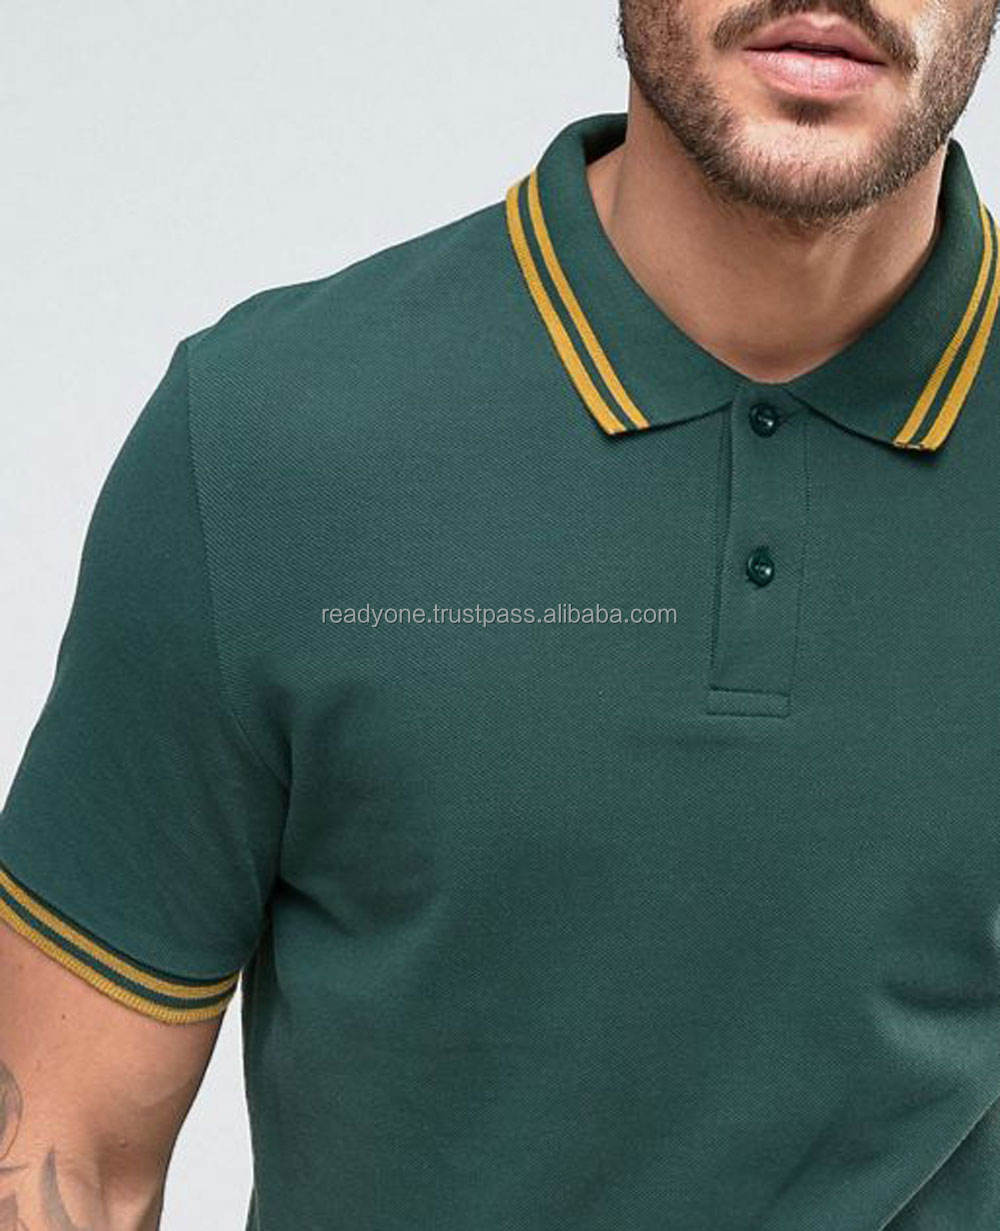 New Look Polo Shirt In Dark Green Men Shirts Cheap plain for men custom polo shirt design